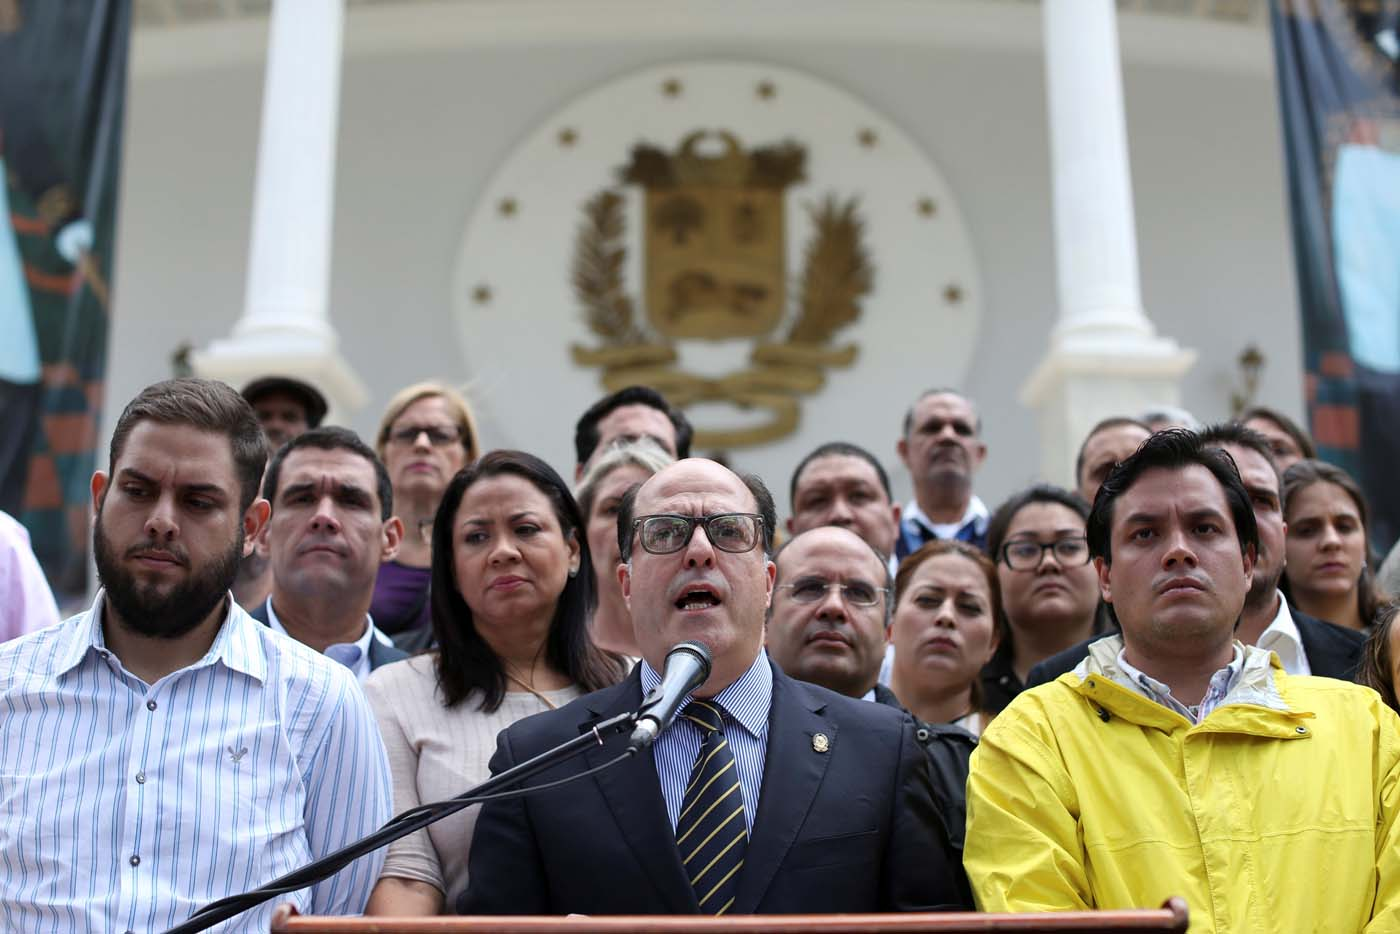 Julio Borges (C), President of the National Assembly and deputy of the Venezuelan coalition of opposition parties (MUD), speaks during a news conference in Caracas, Venezuela March 30, 2017. REUTERS/Carlos Garcia Rawlins